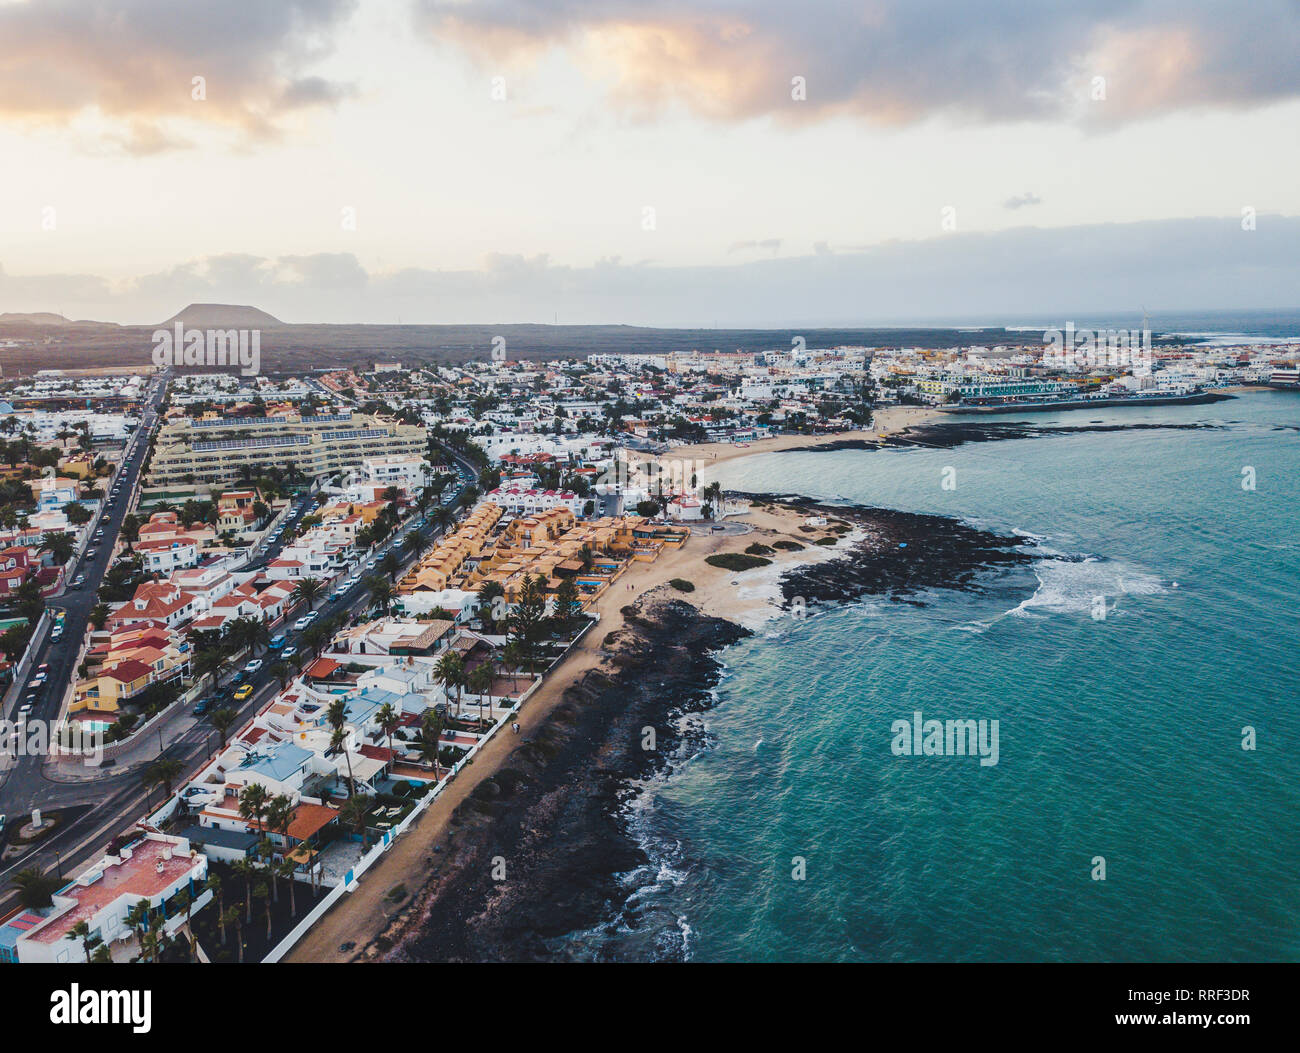 Scenic aerial view of city on ocean shore - Stock Image